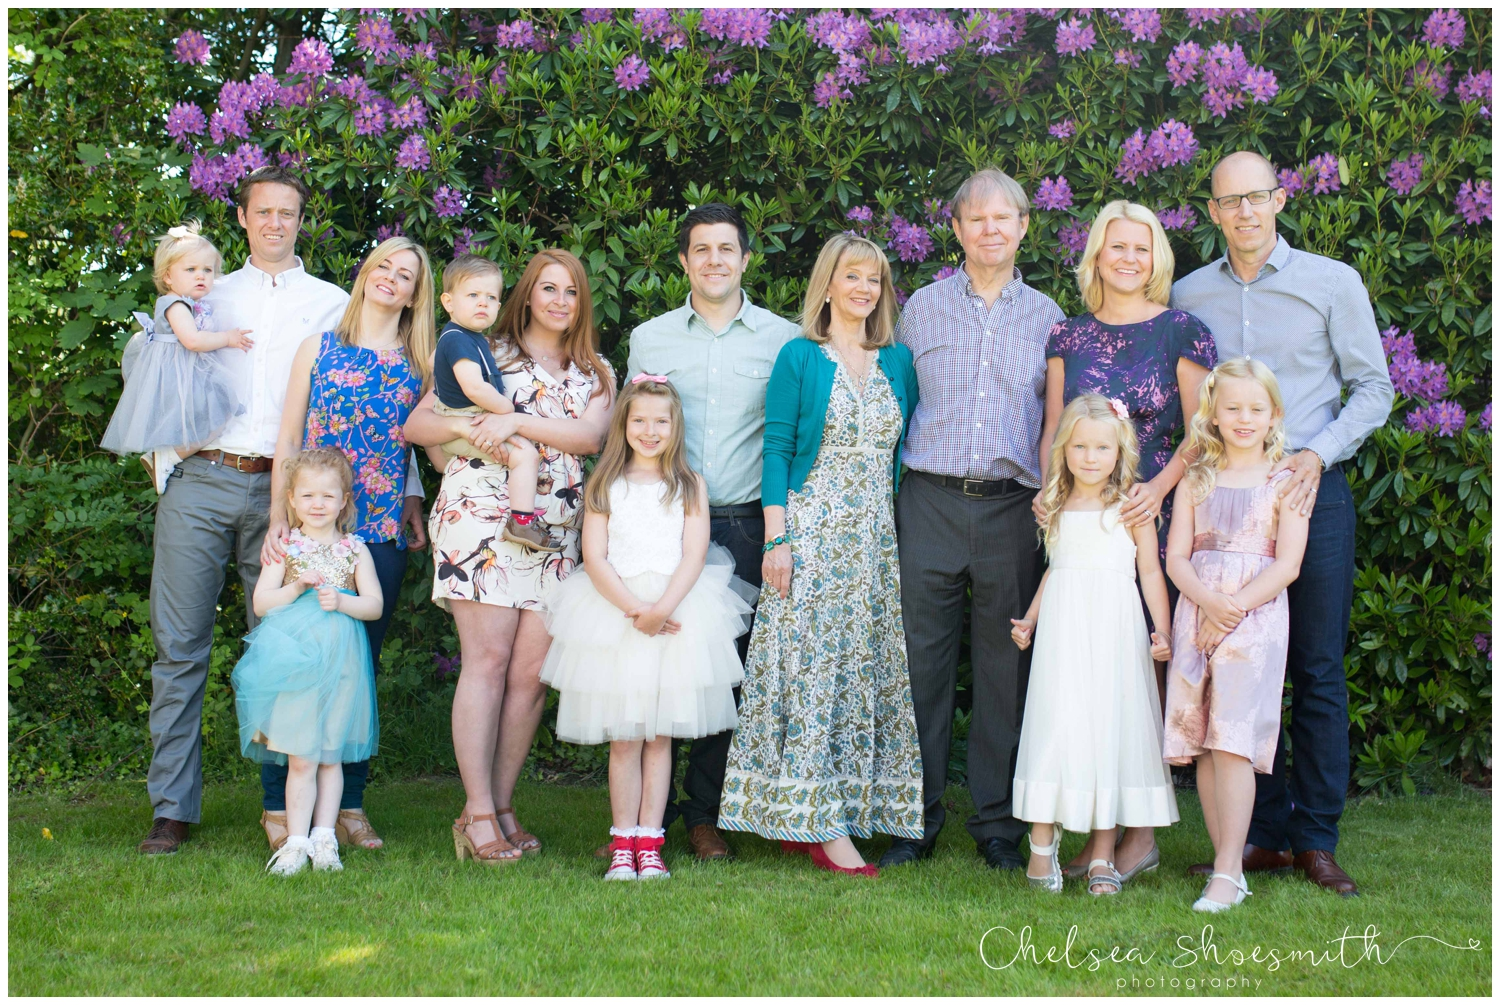 (68 of 125) Louise Roberts Family Portrait Wilmslow Chelsea Shoesmith Photography_